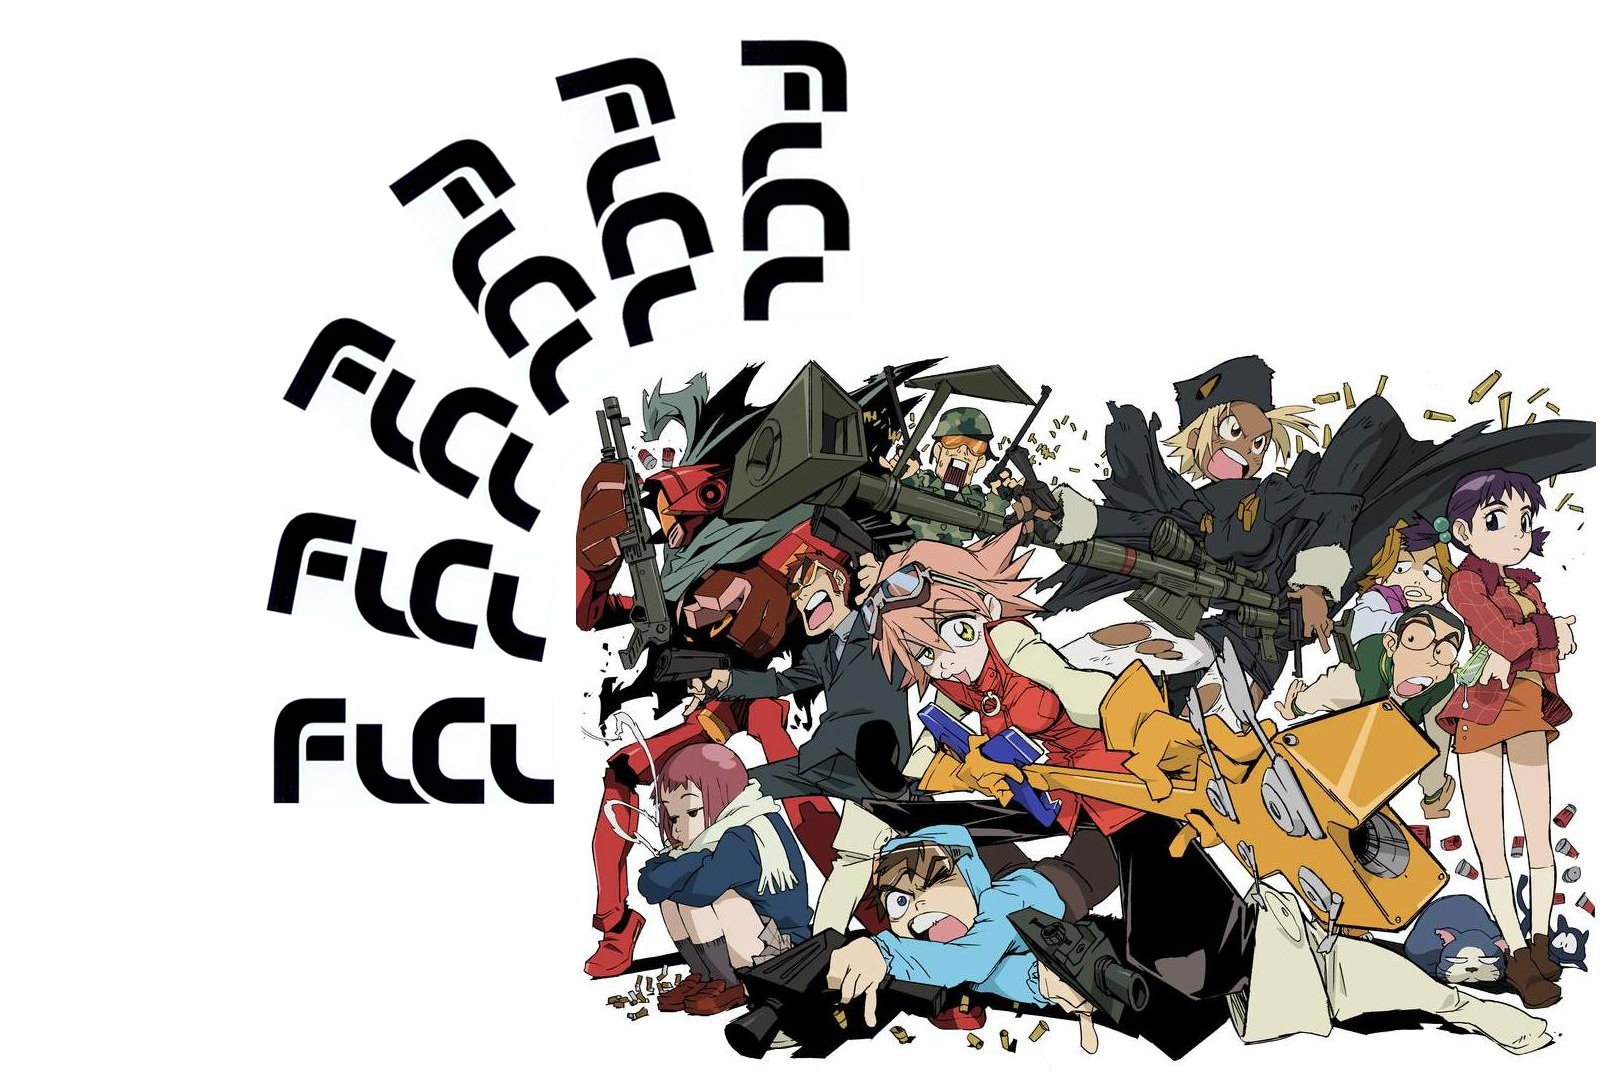 Flcl wallpaper and background image 1600x1090 id 59385 - Flcl wallpaper ...